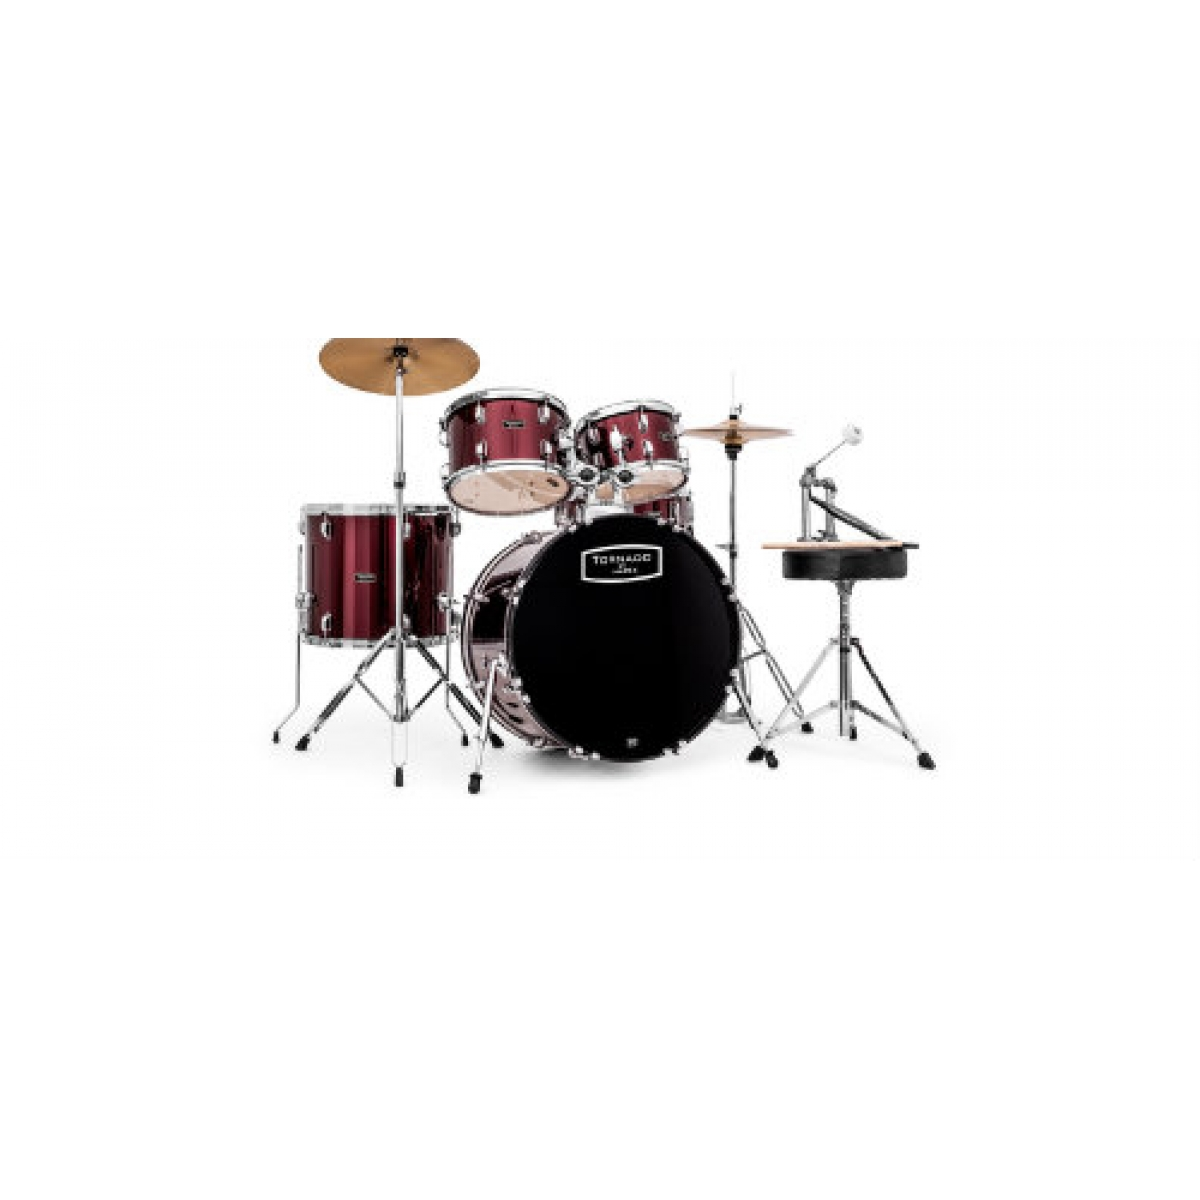 tornado by mapex tnd5294ftc drum kit tornado by mapex tnd5294ftc at promenade music. Black Bedroom Furniture Sets. Home Design Ideas